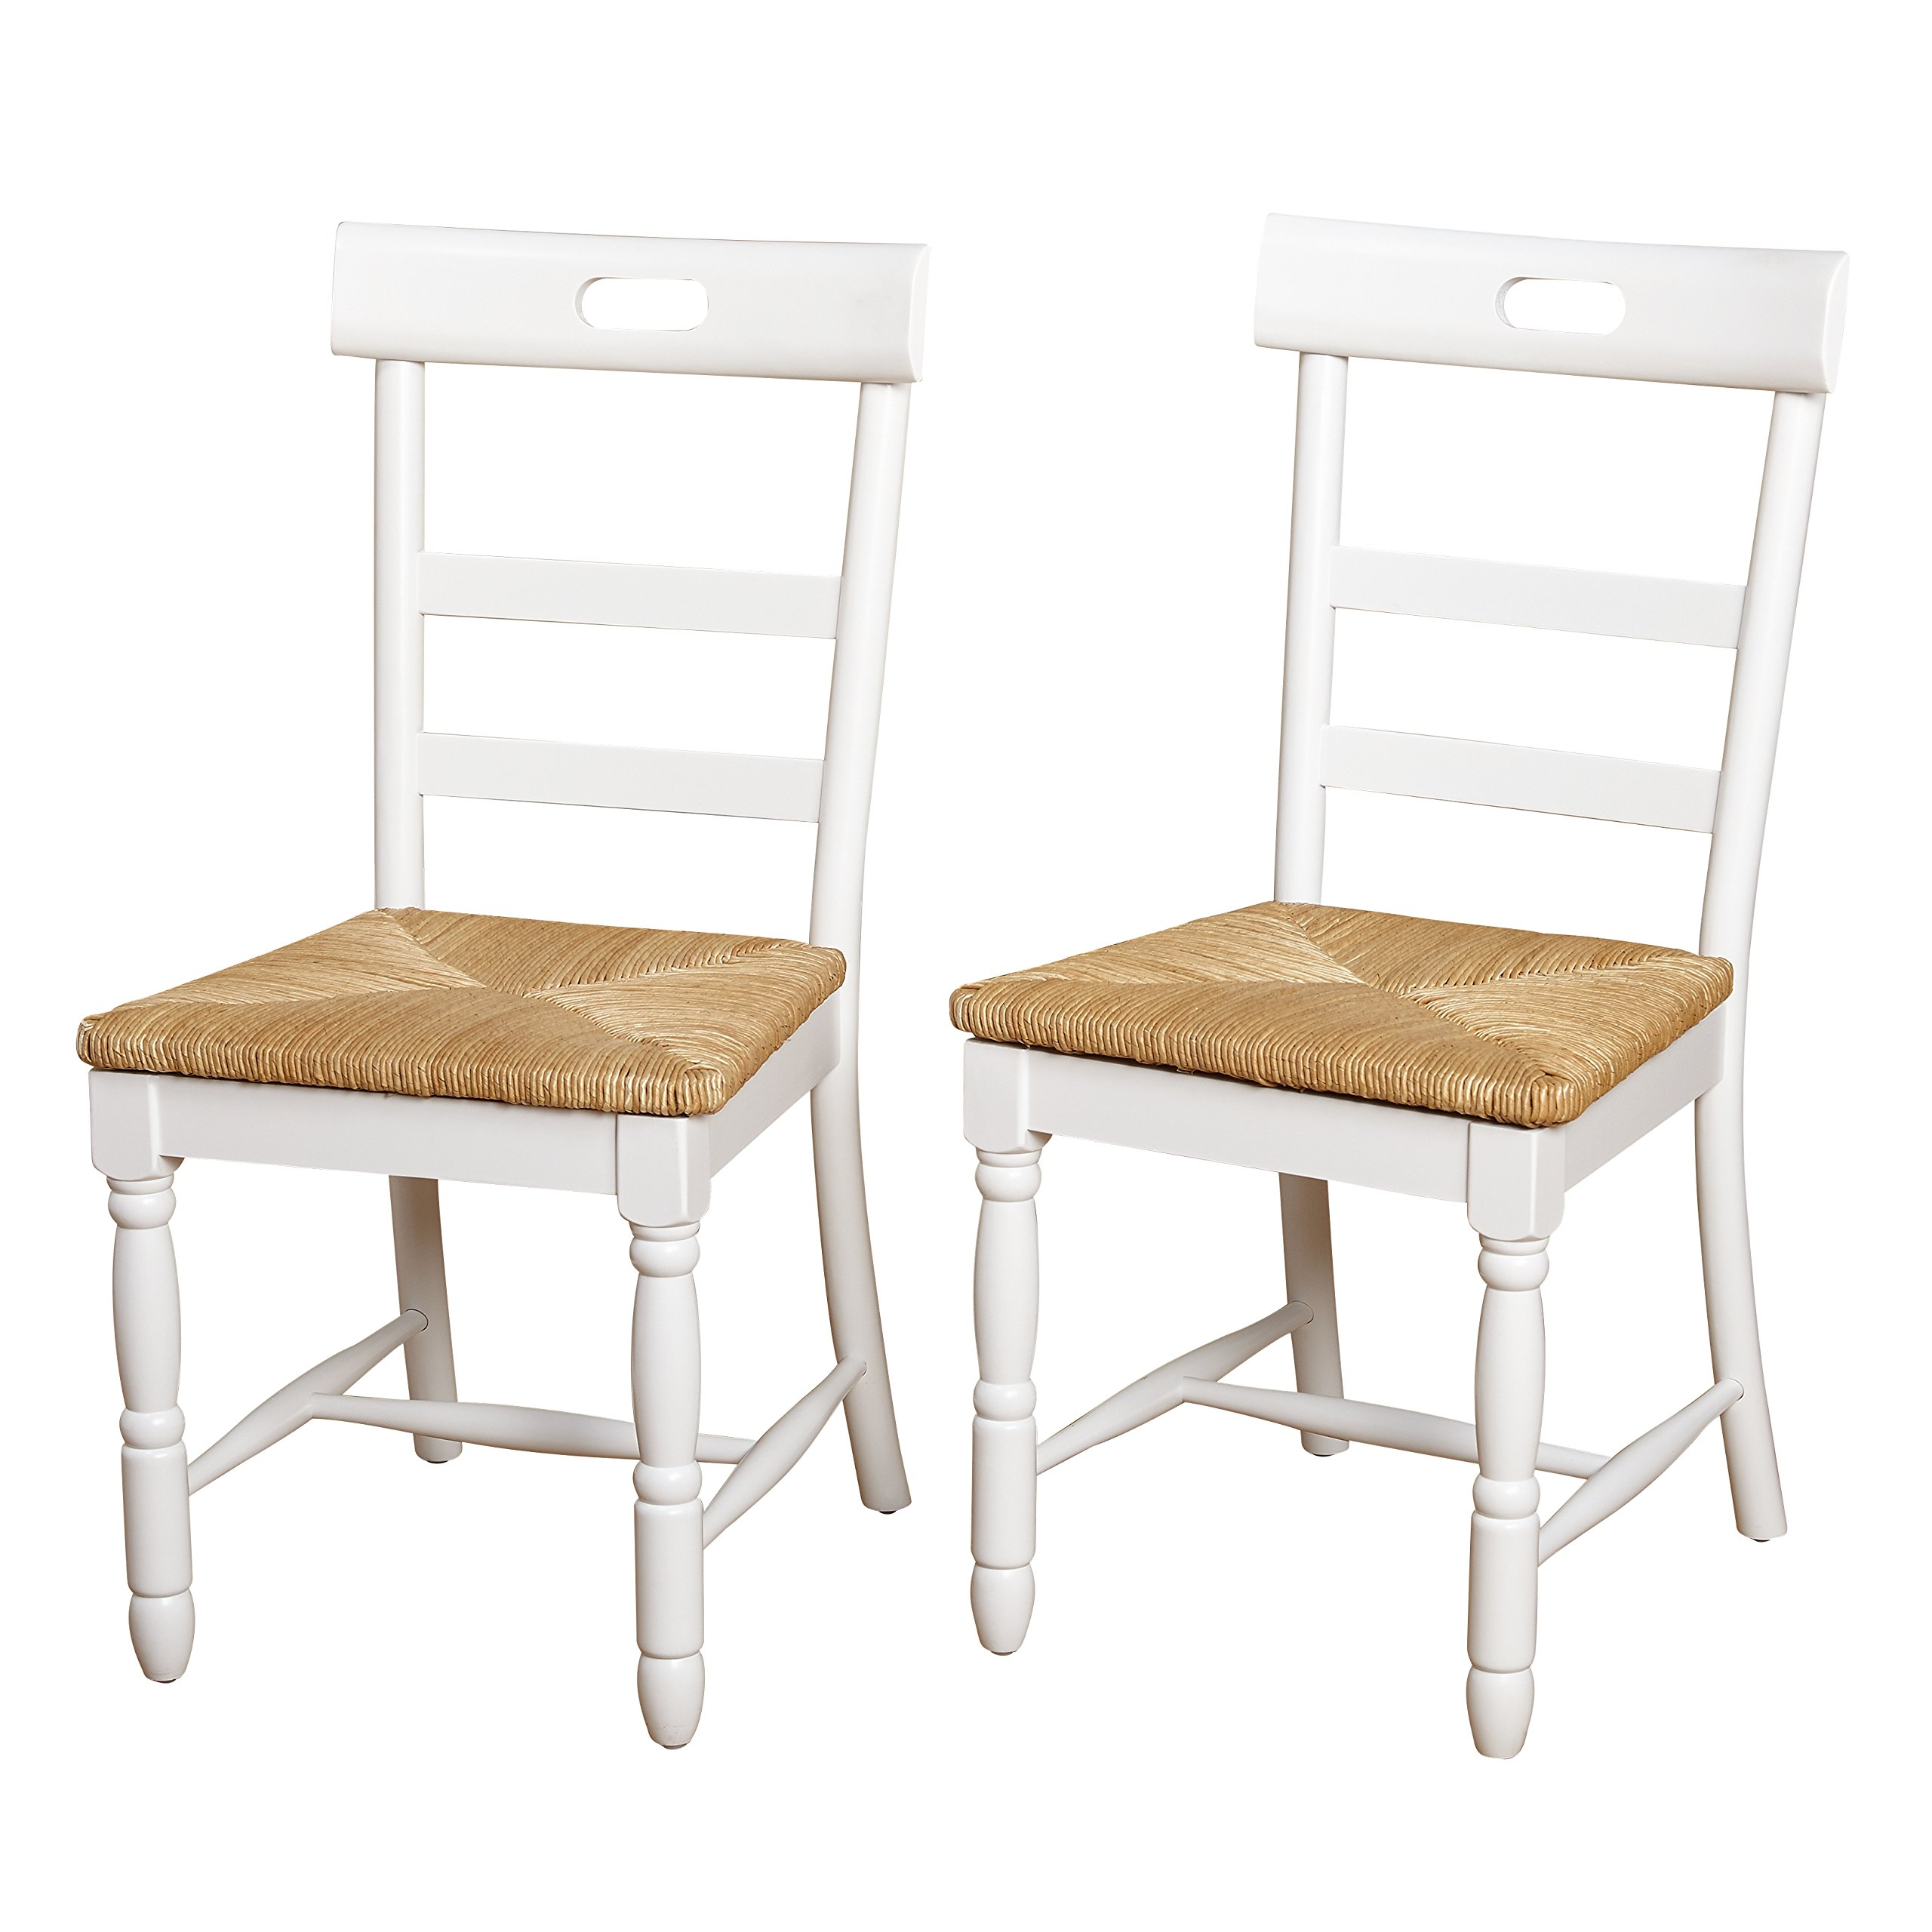 Target Marketing Systems Briana Series Contemporary Country Style Woven Wooden Crafted Dining Chairs, White, Set of 2 by Target Marketing Systems